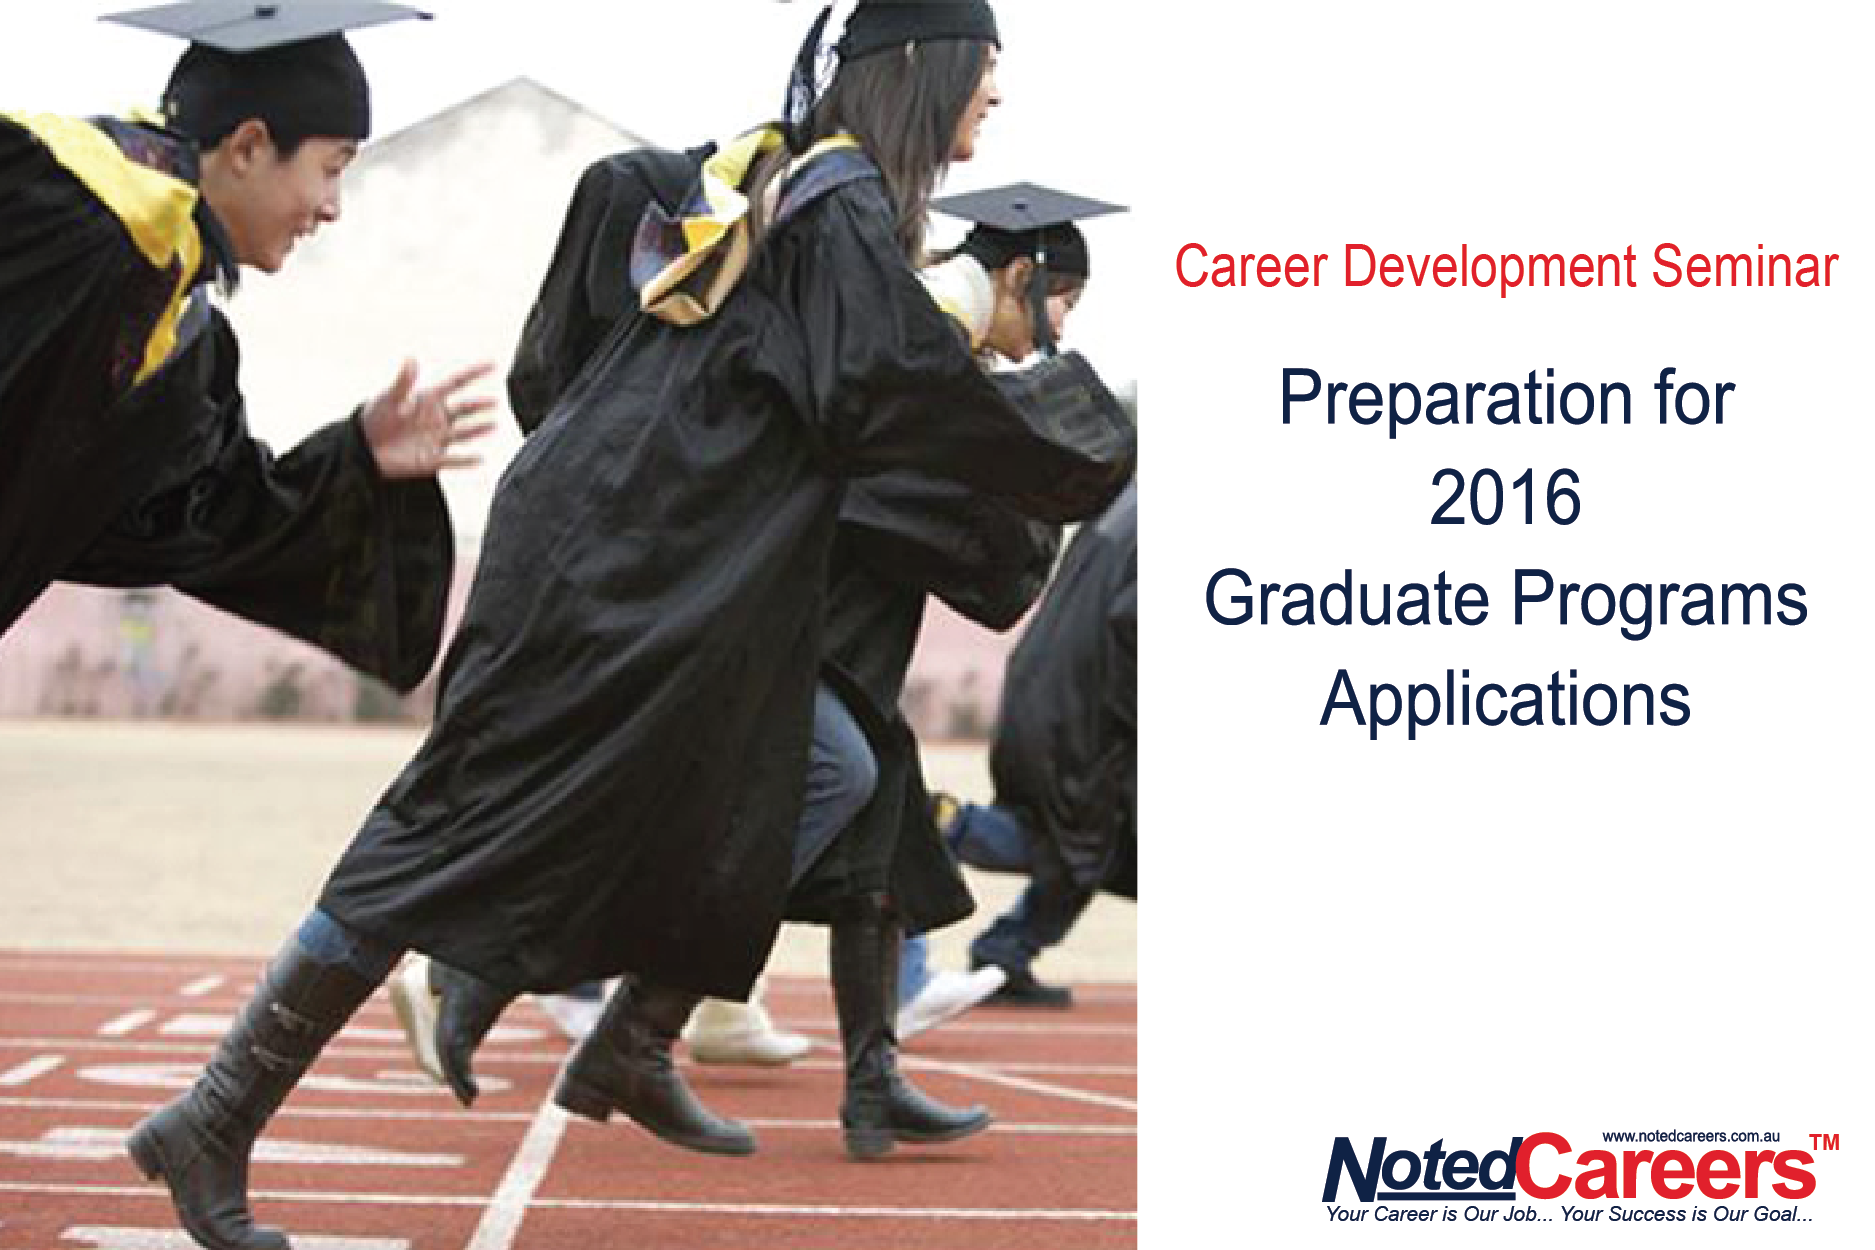 Preparation for 2016 graduate programs applications